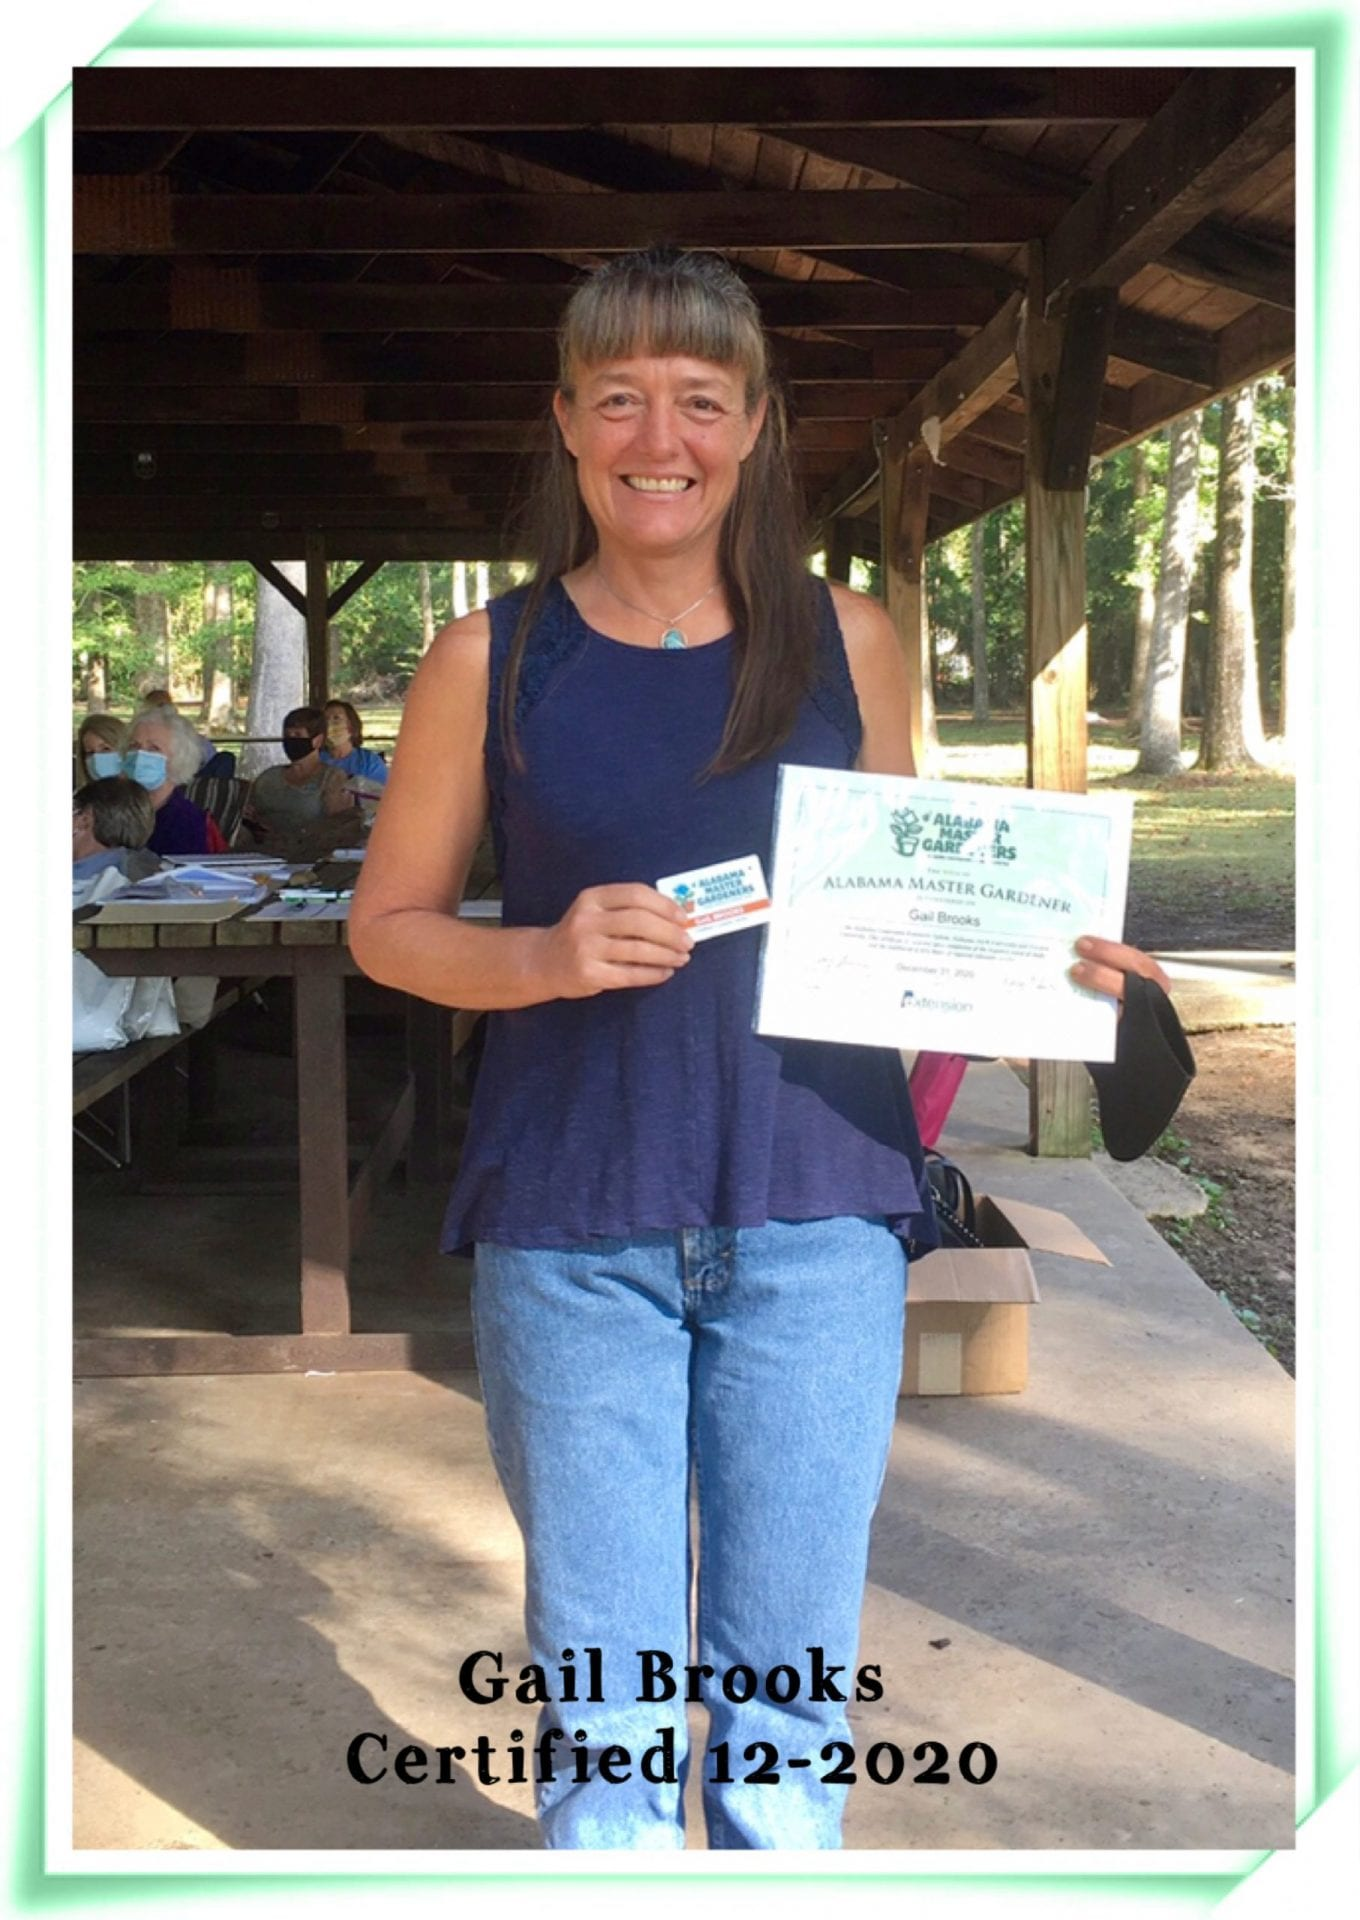 Gail brooks gets certificate